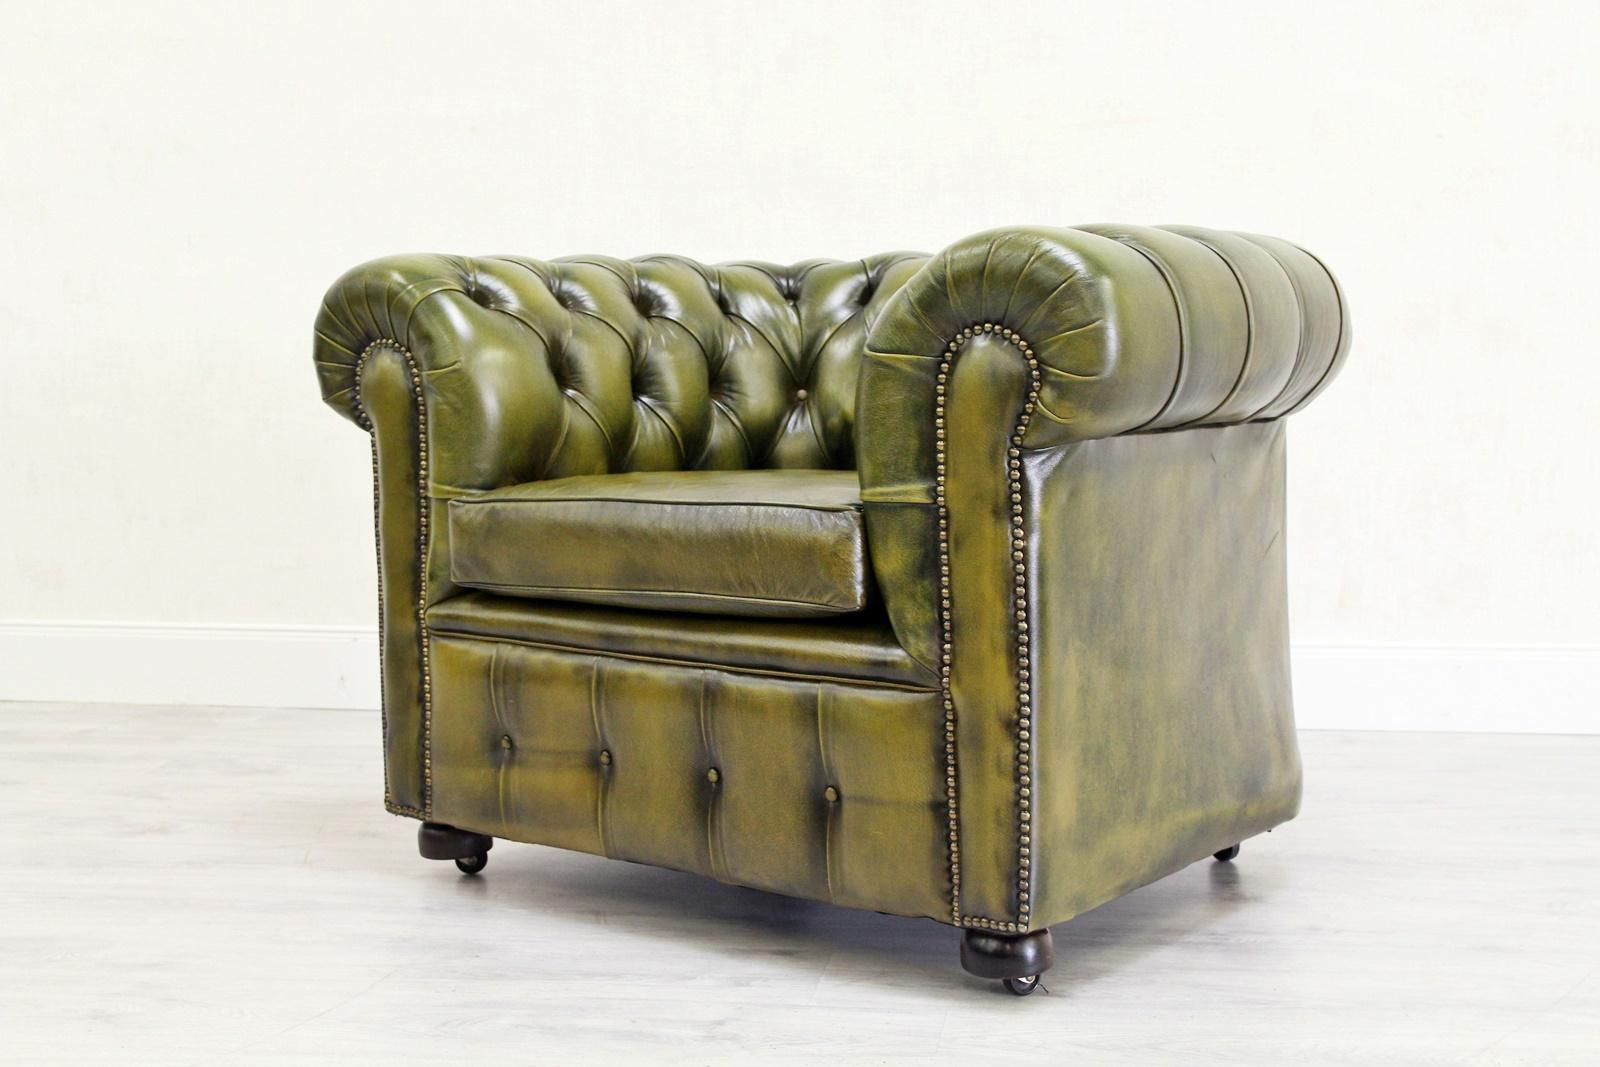 Two Chesterfield Club Armchair Leather English Armchair Baroque